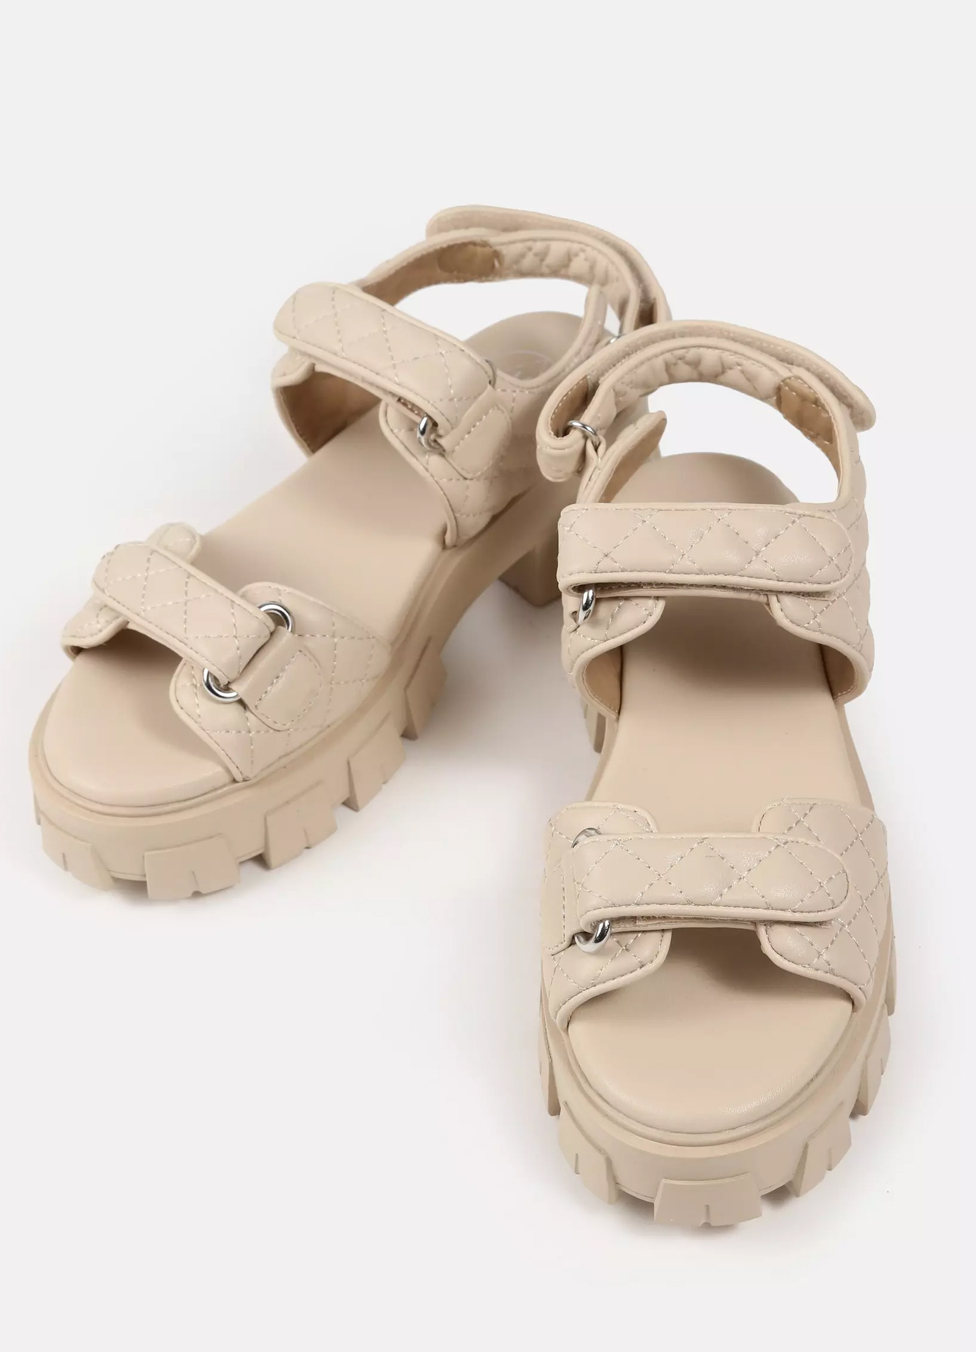 chanel dad sandals dupe 2021